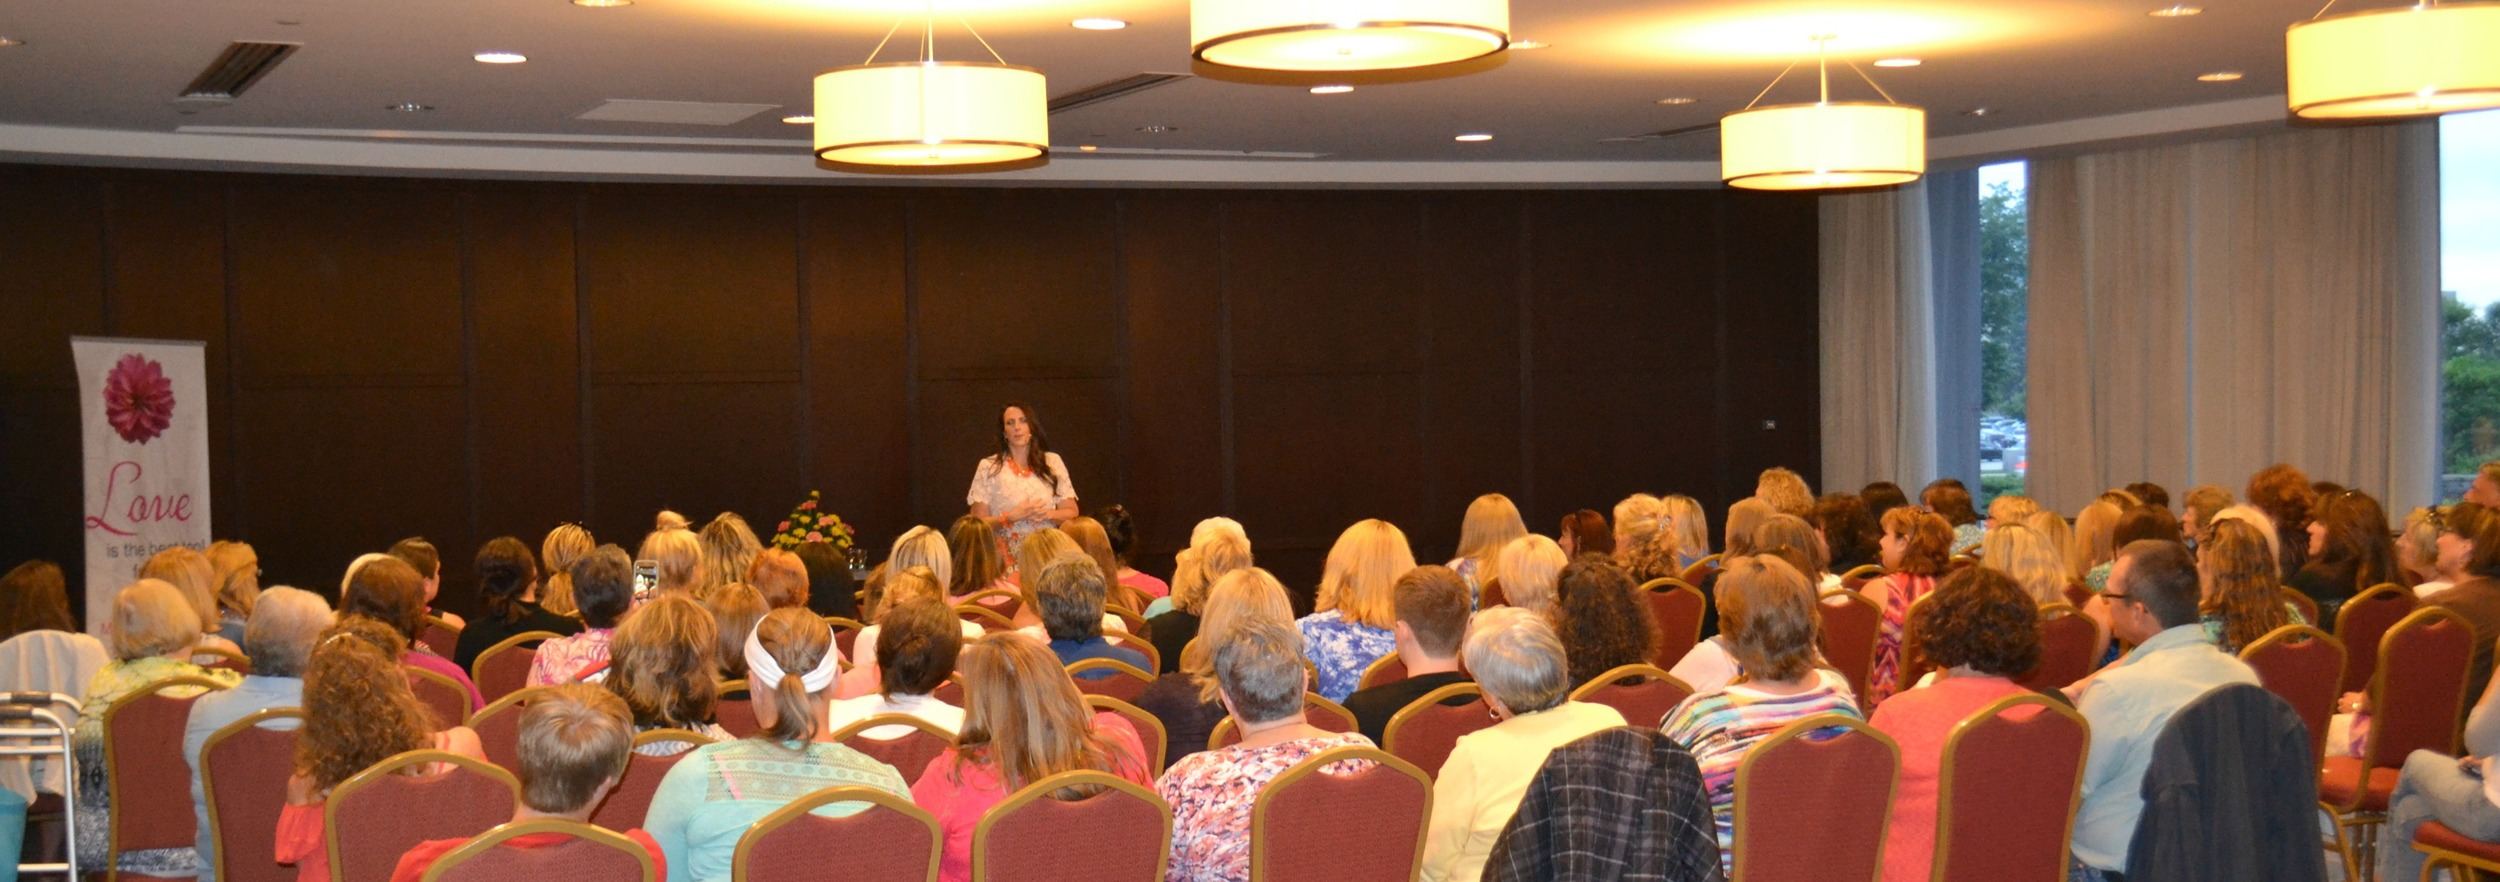 Green Bay Psychic Medium Mollie Morning Star giving live audience readings.